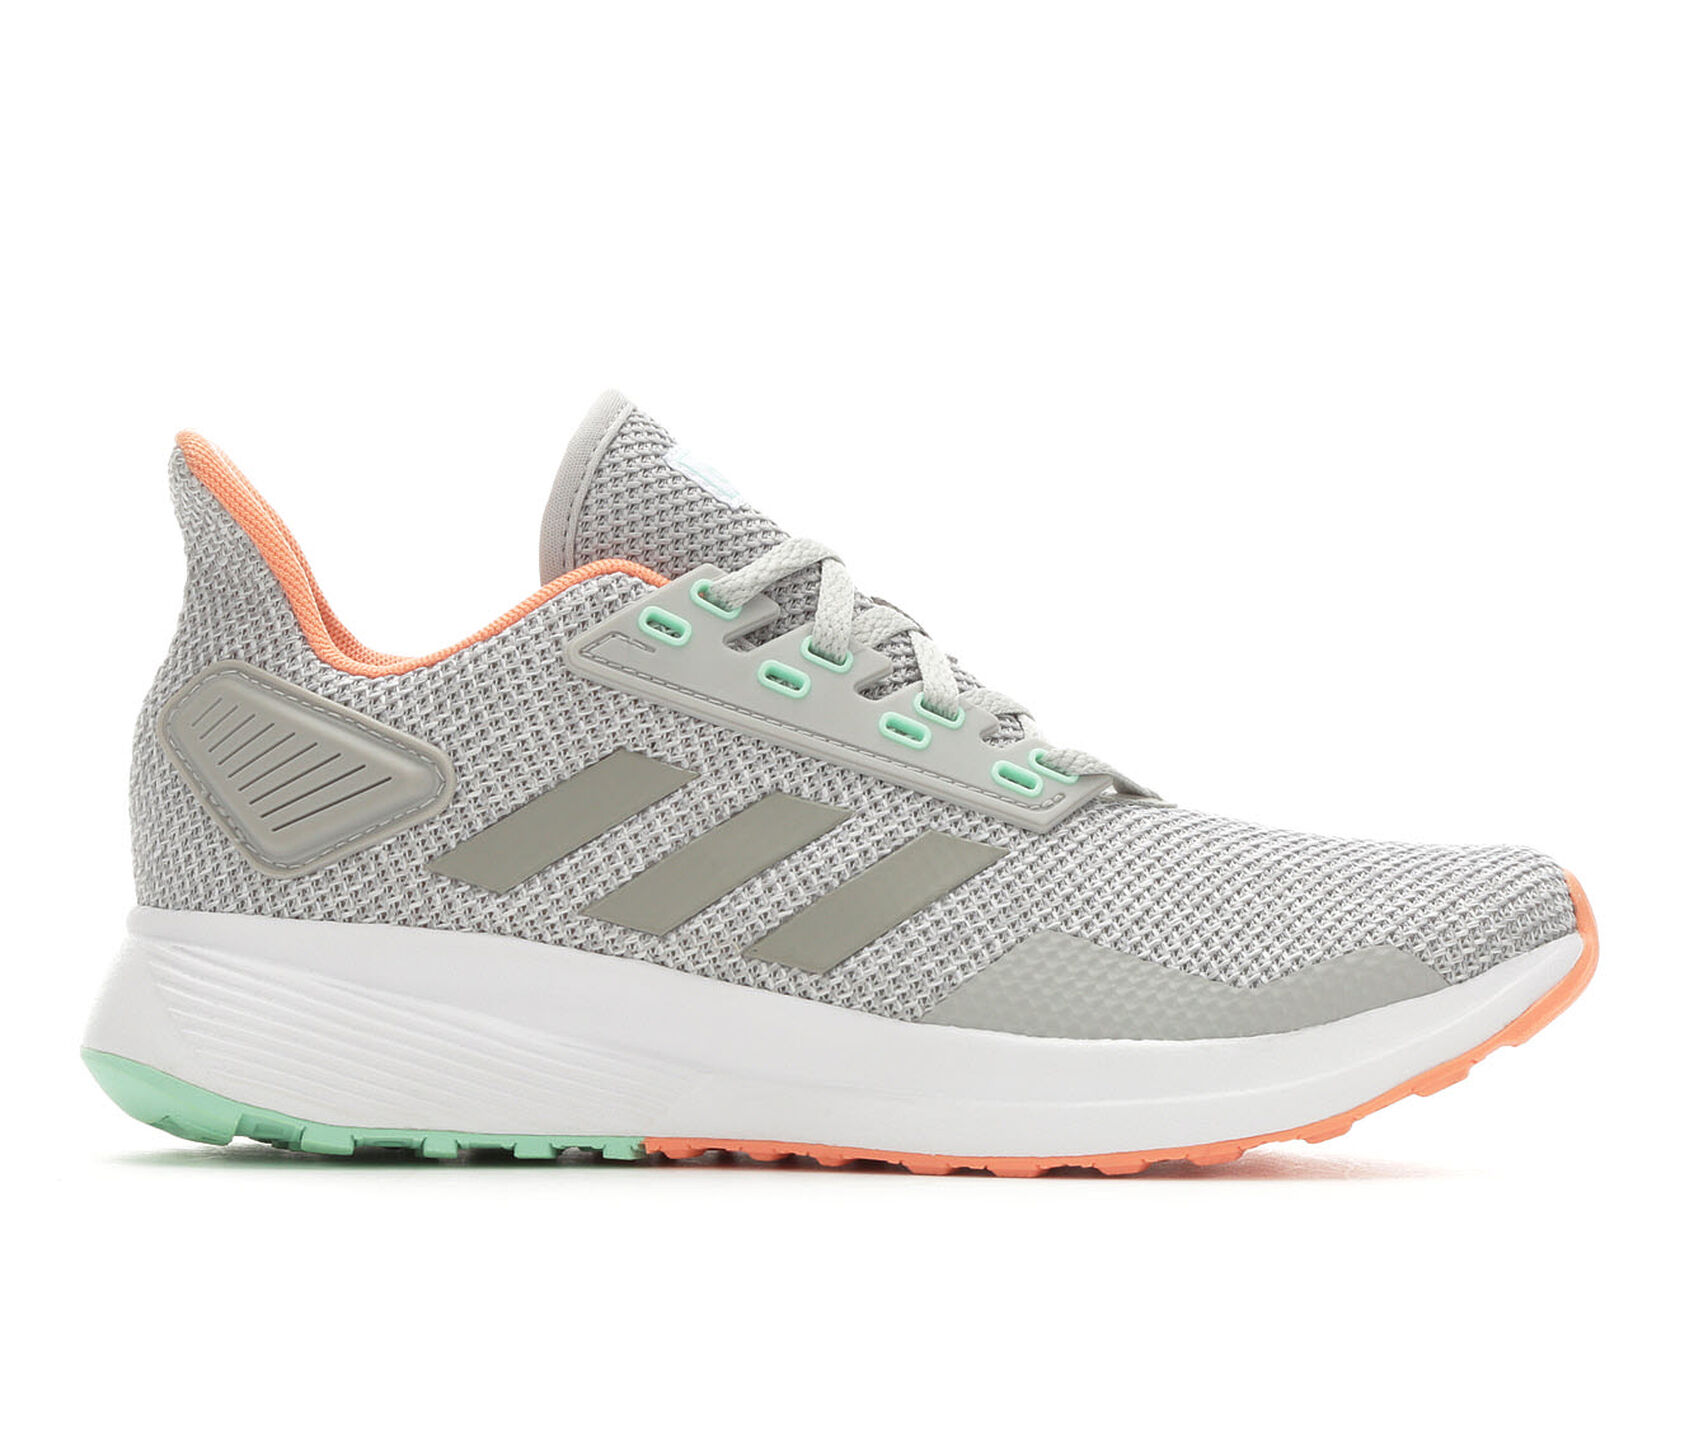 ... Adidas Duramo 9 Knit Running Shoes. Previous 391879675